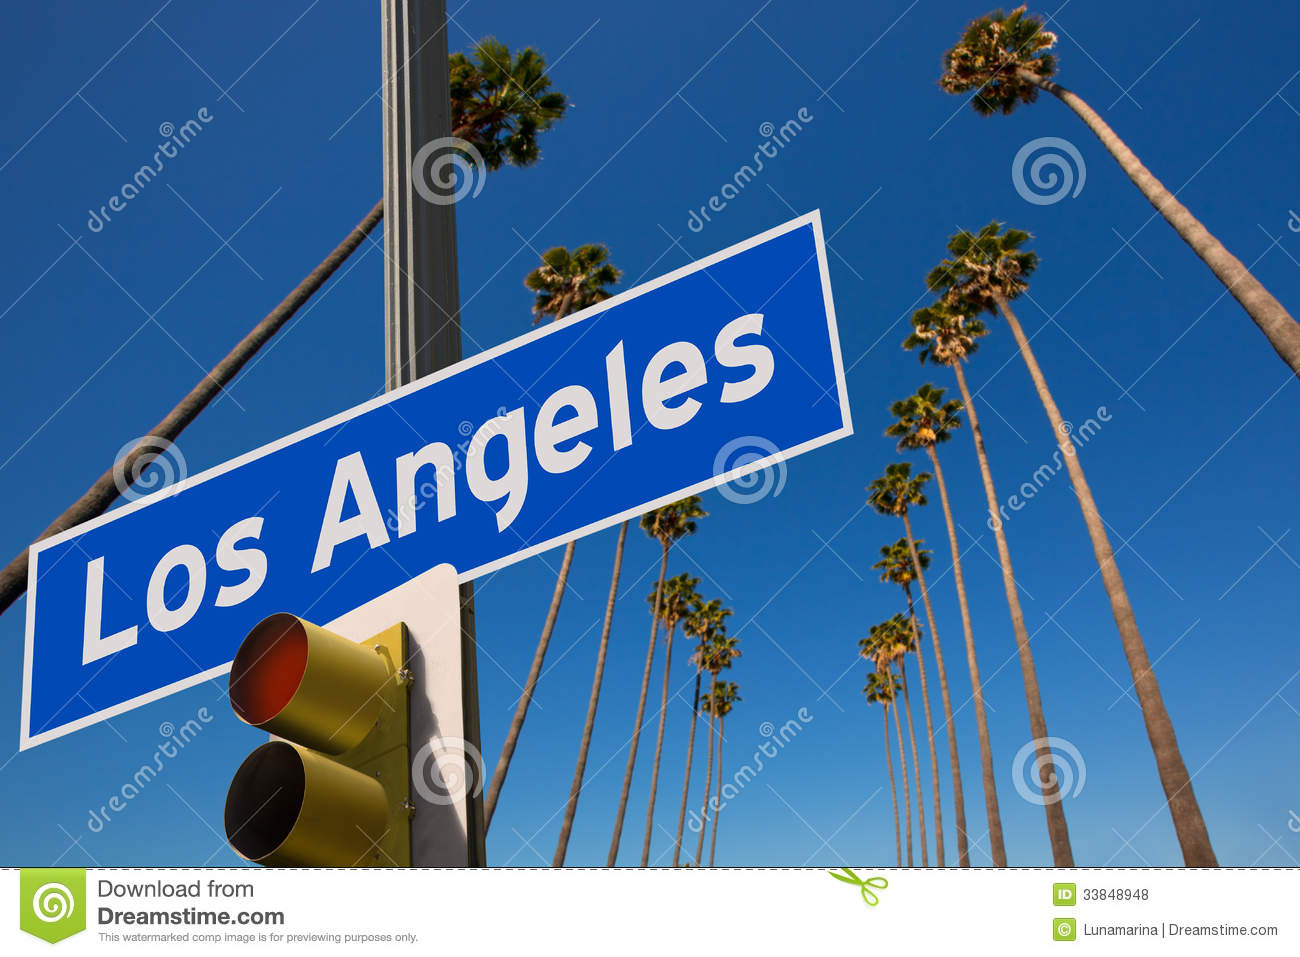 LA Los Angeles Palm Trees In A Row Road Sign Photo Mount